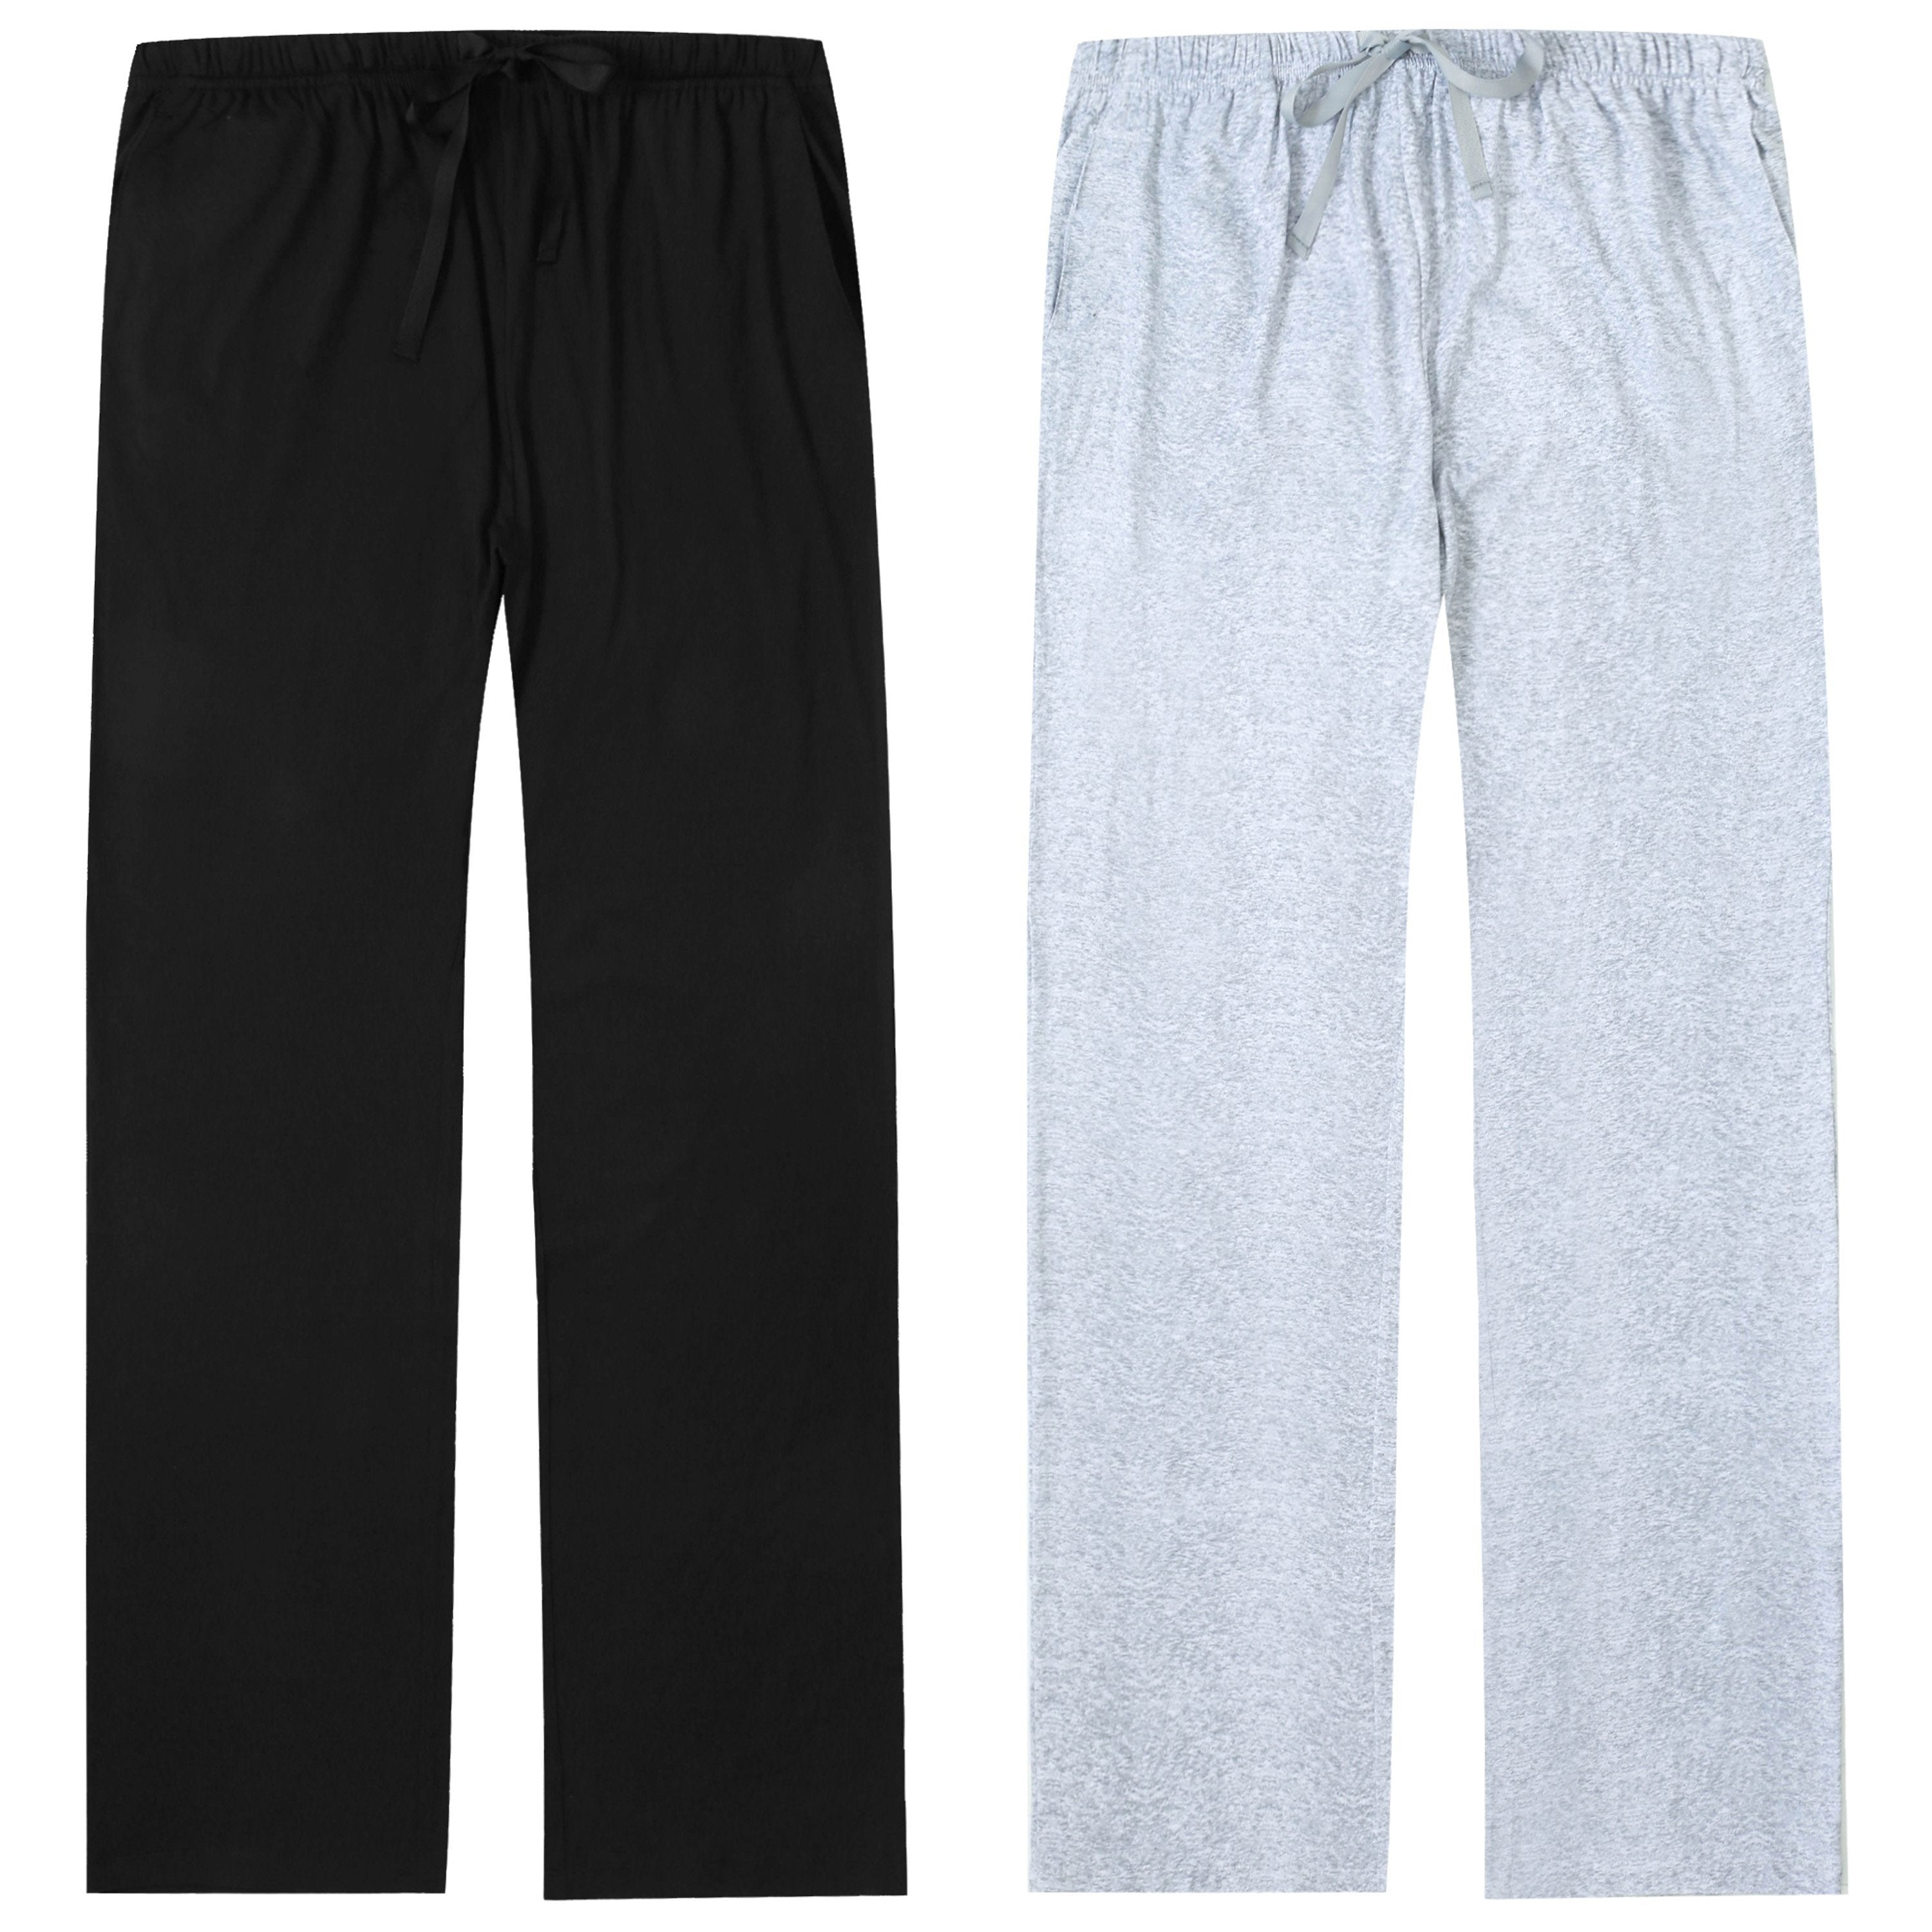 Pajama Pants for Women - 2Pack - Super Soft Knit & Stretchy Womens Pajama Pants